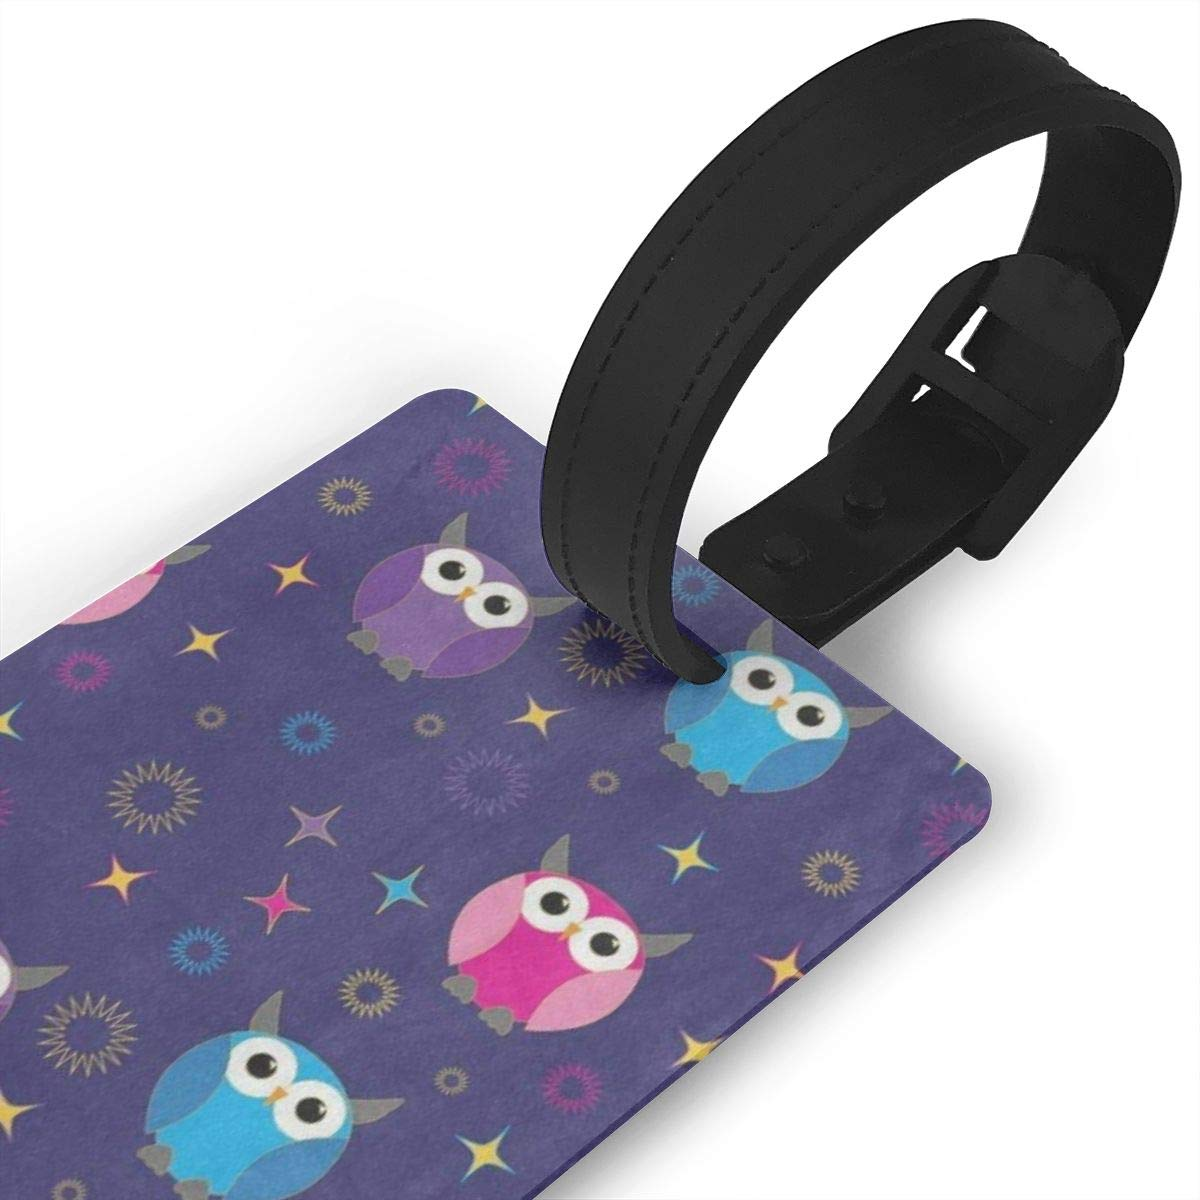 Luggage Tags Funny Owl Bird Merry Christmas Bag Tag for Travel 2 PCS